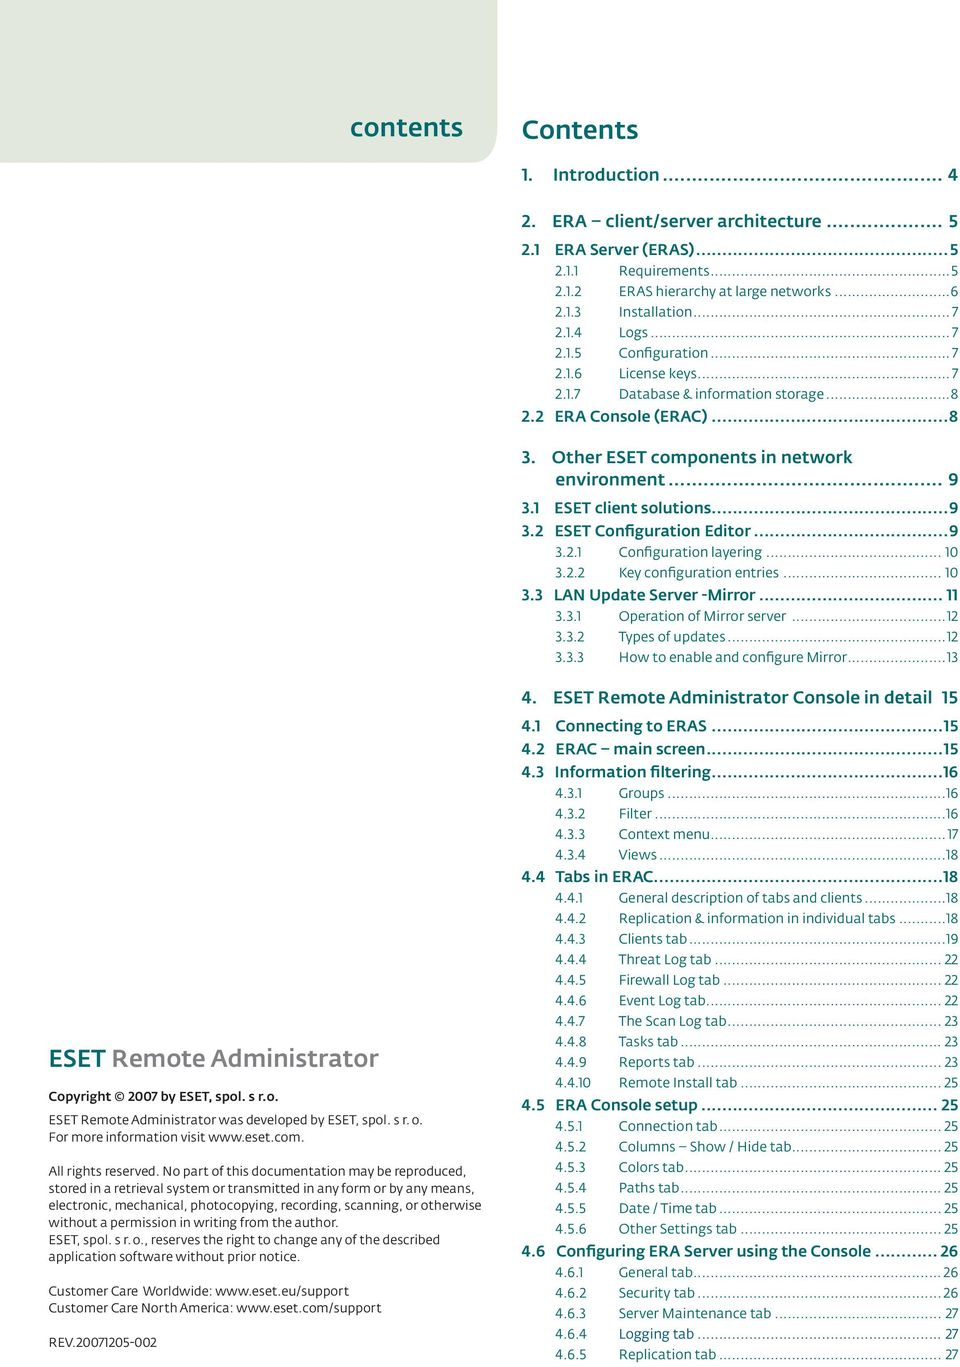 1 ESET client solutions...9 3.2 ESET Configuration Editor...9 3.2.1 Configuration layering... 10 3.2.2 Key configuration entries... 10 3.3 LAN Update Server -Mirror... 11 3.3.1 Operation of Mirror server.